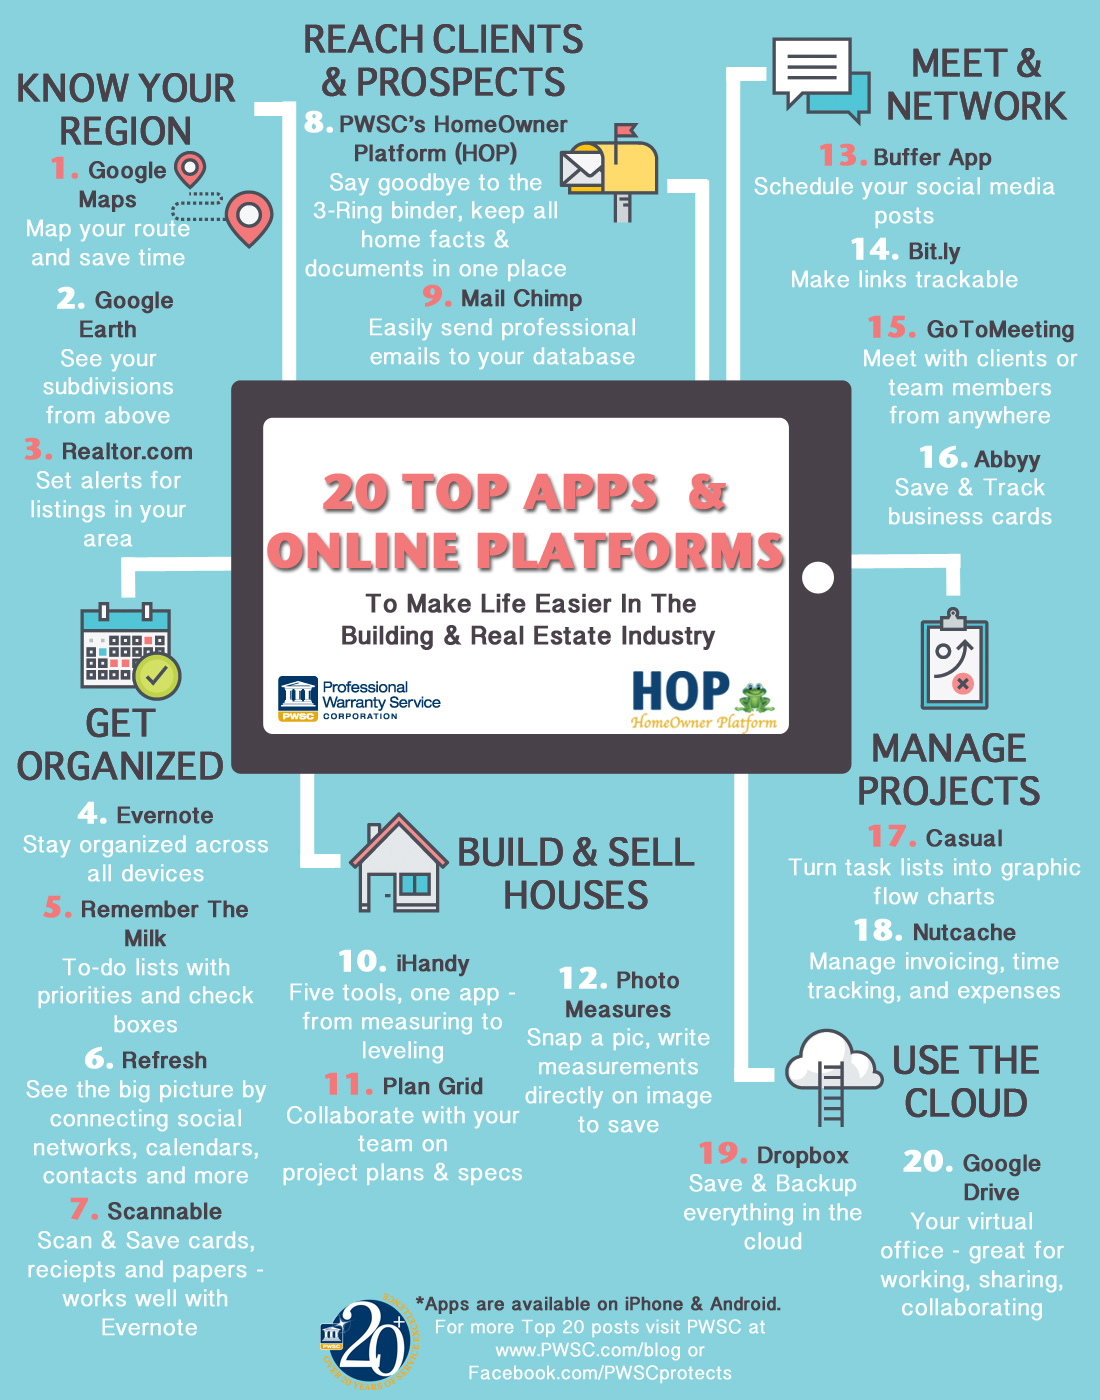 Top Apps Online Platforms For Builders And Realtors